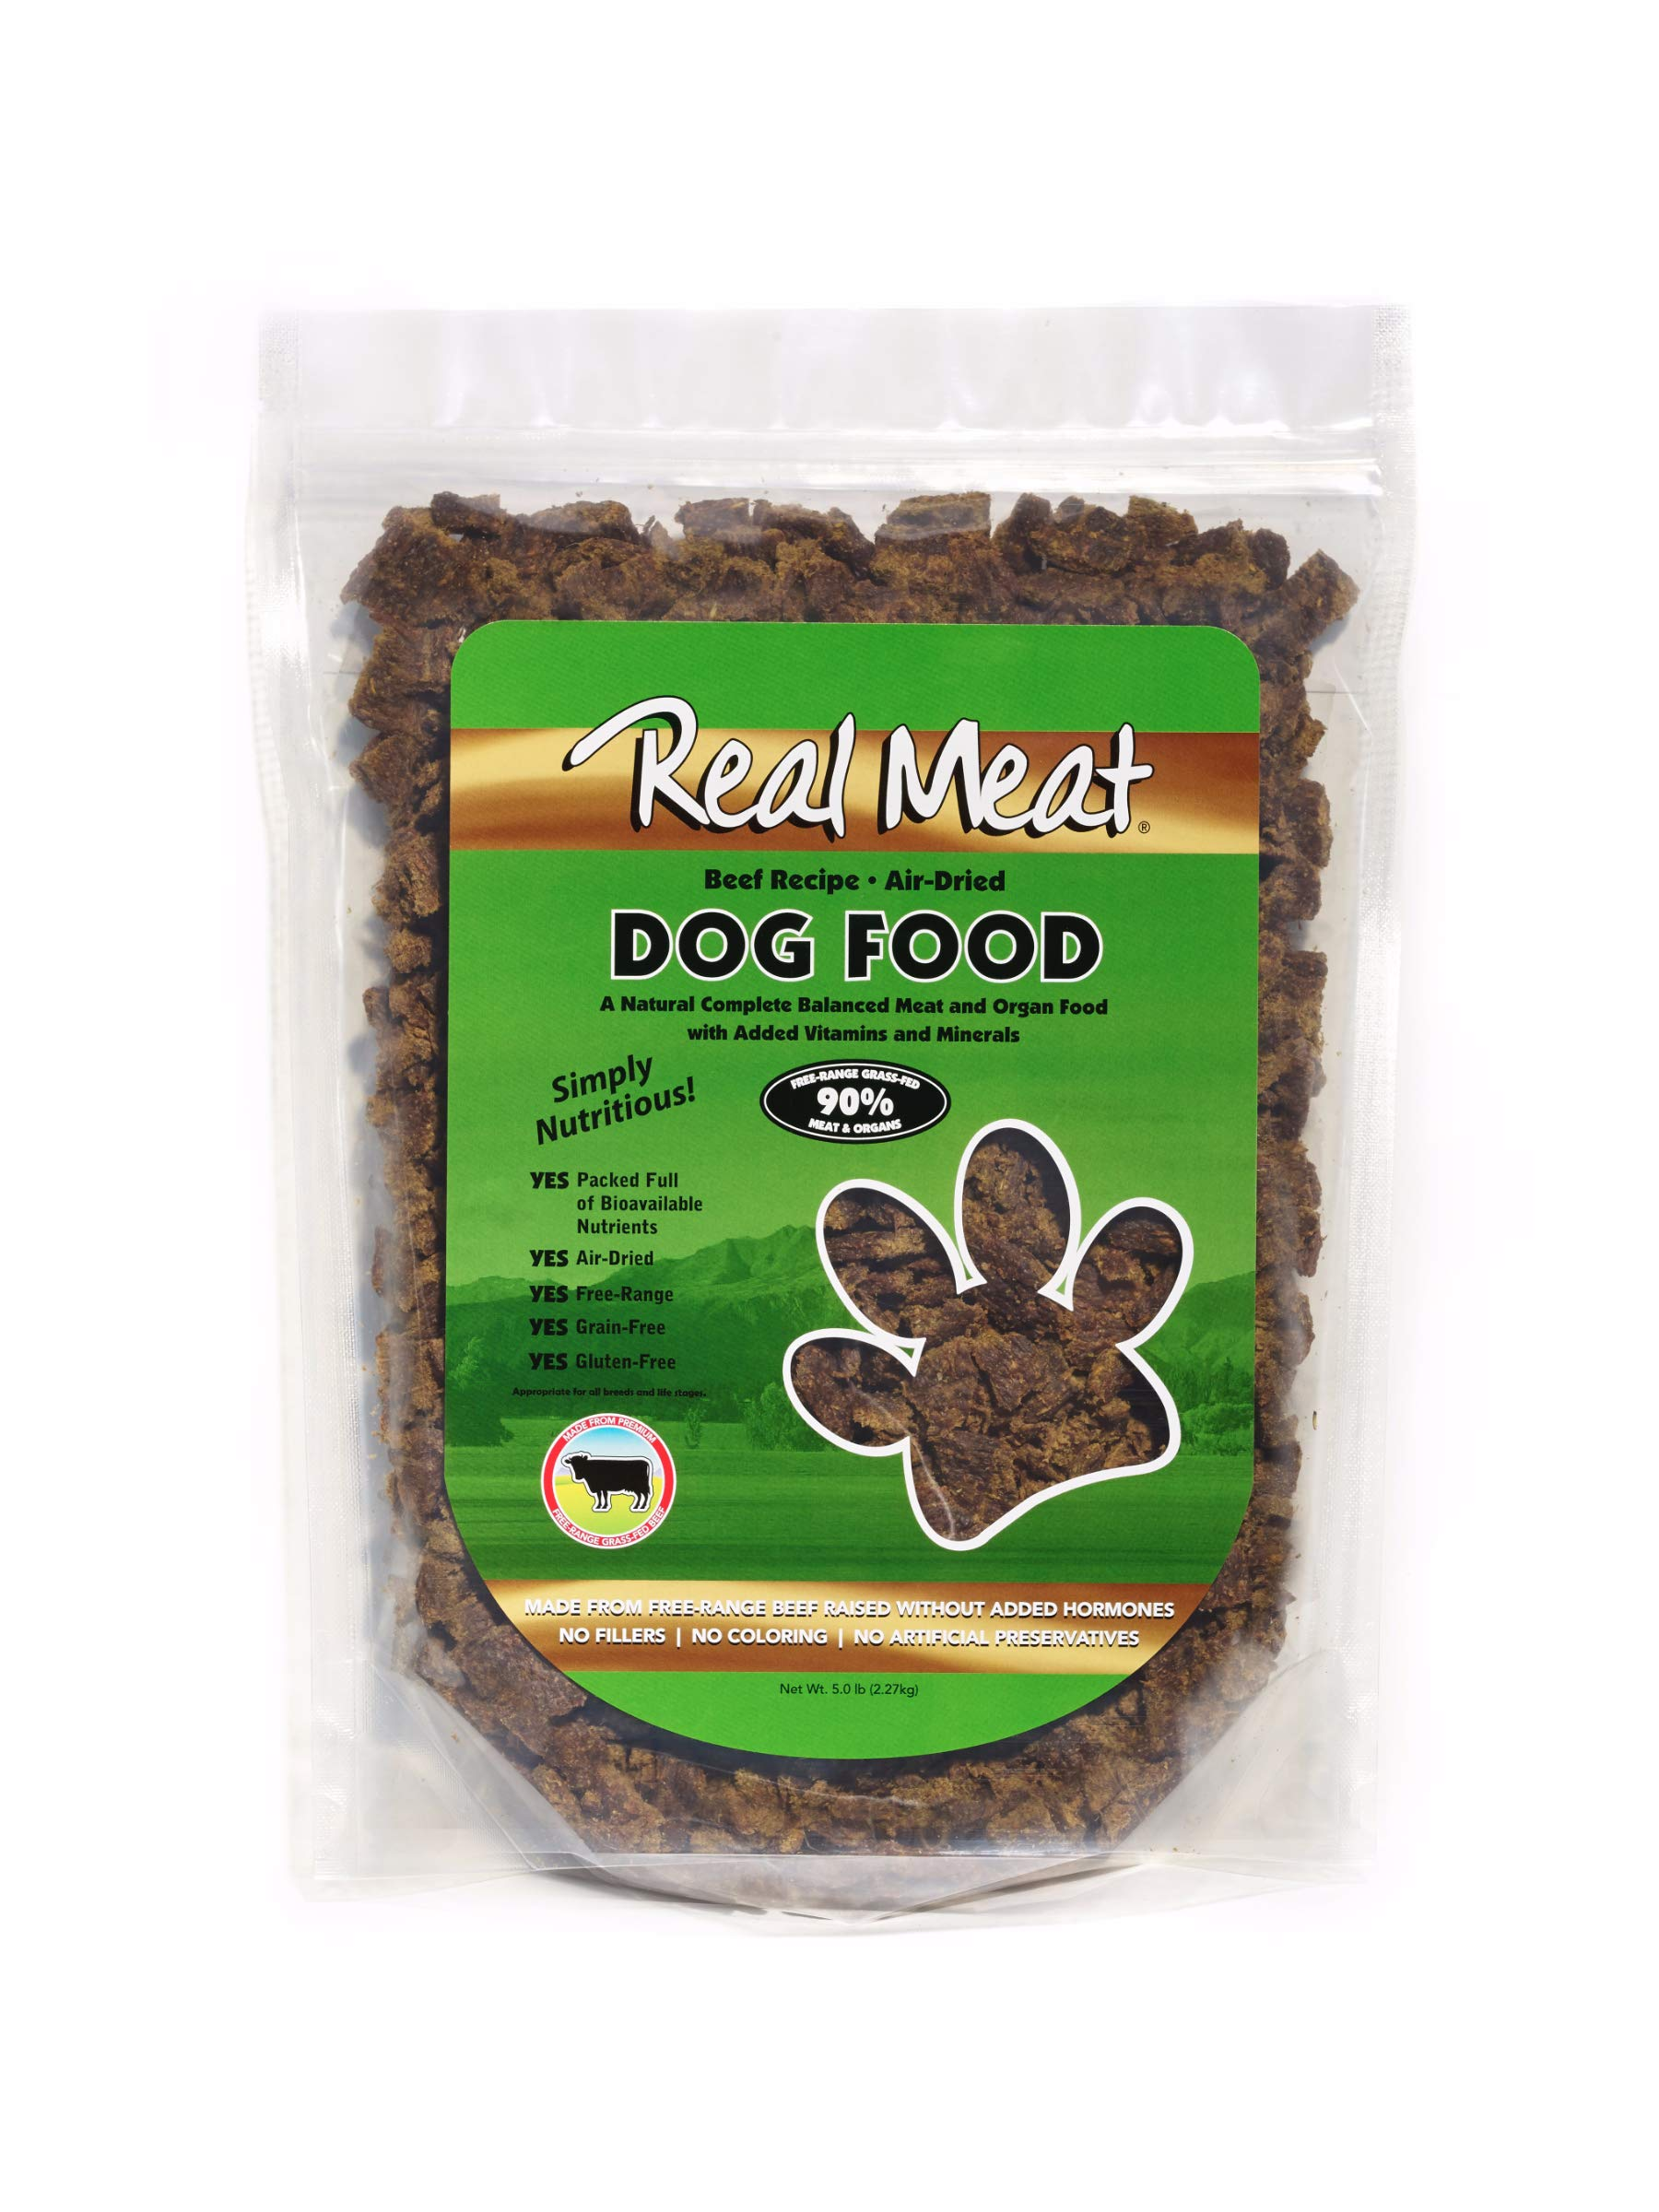 Real Meat 5lb Air-Dried Dog Food, Beef by Real Meat